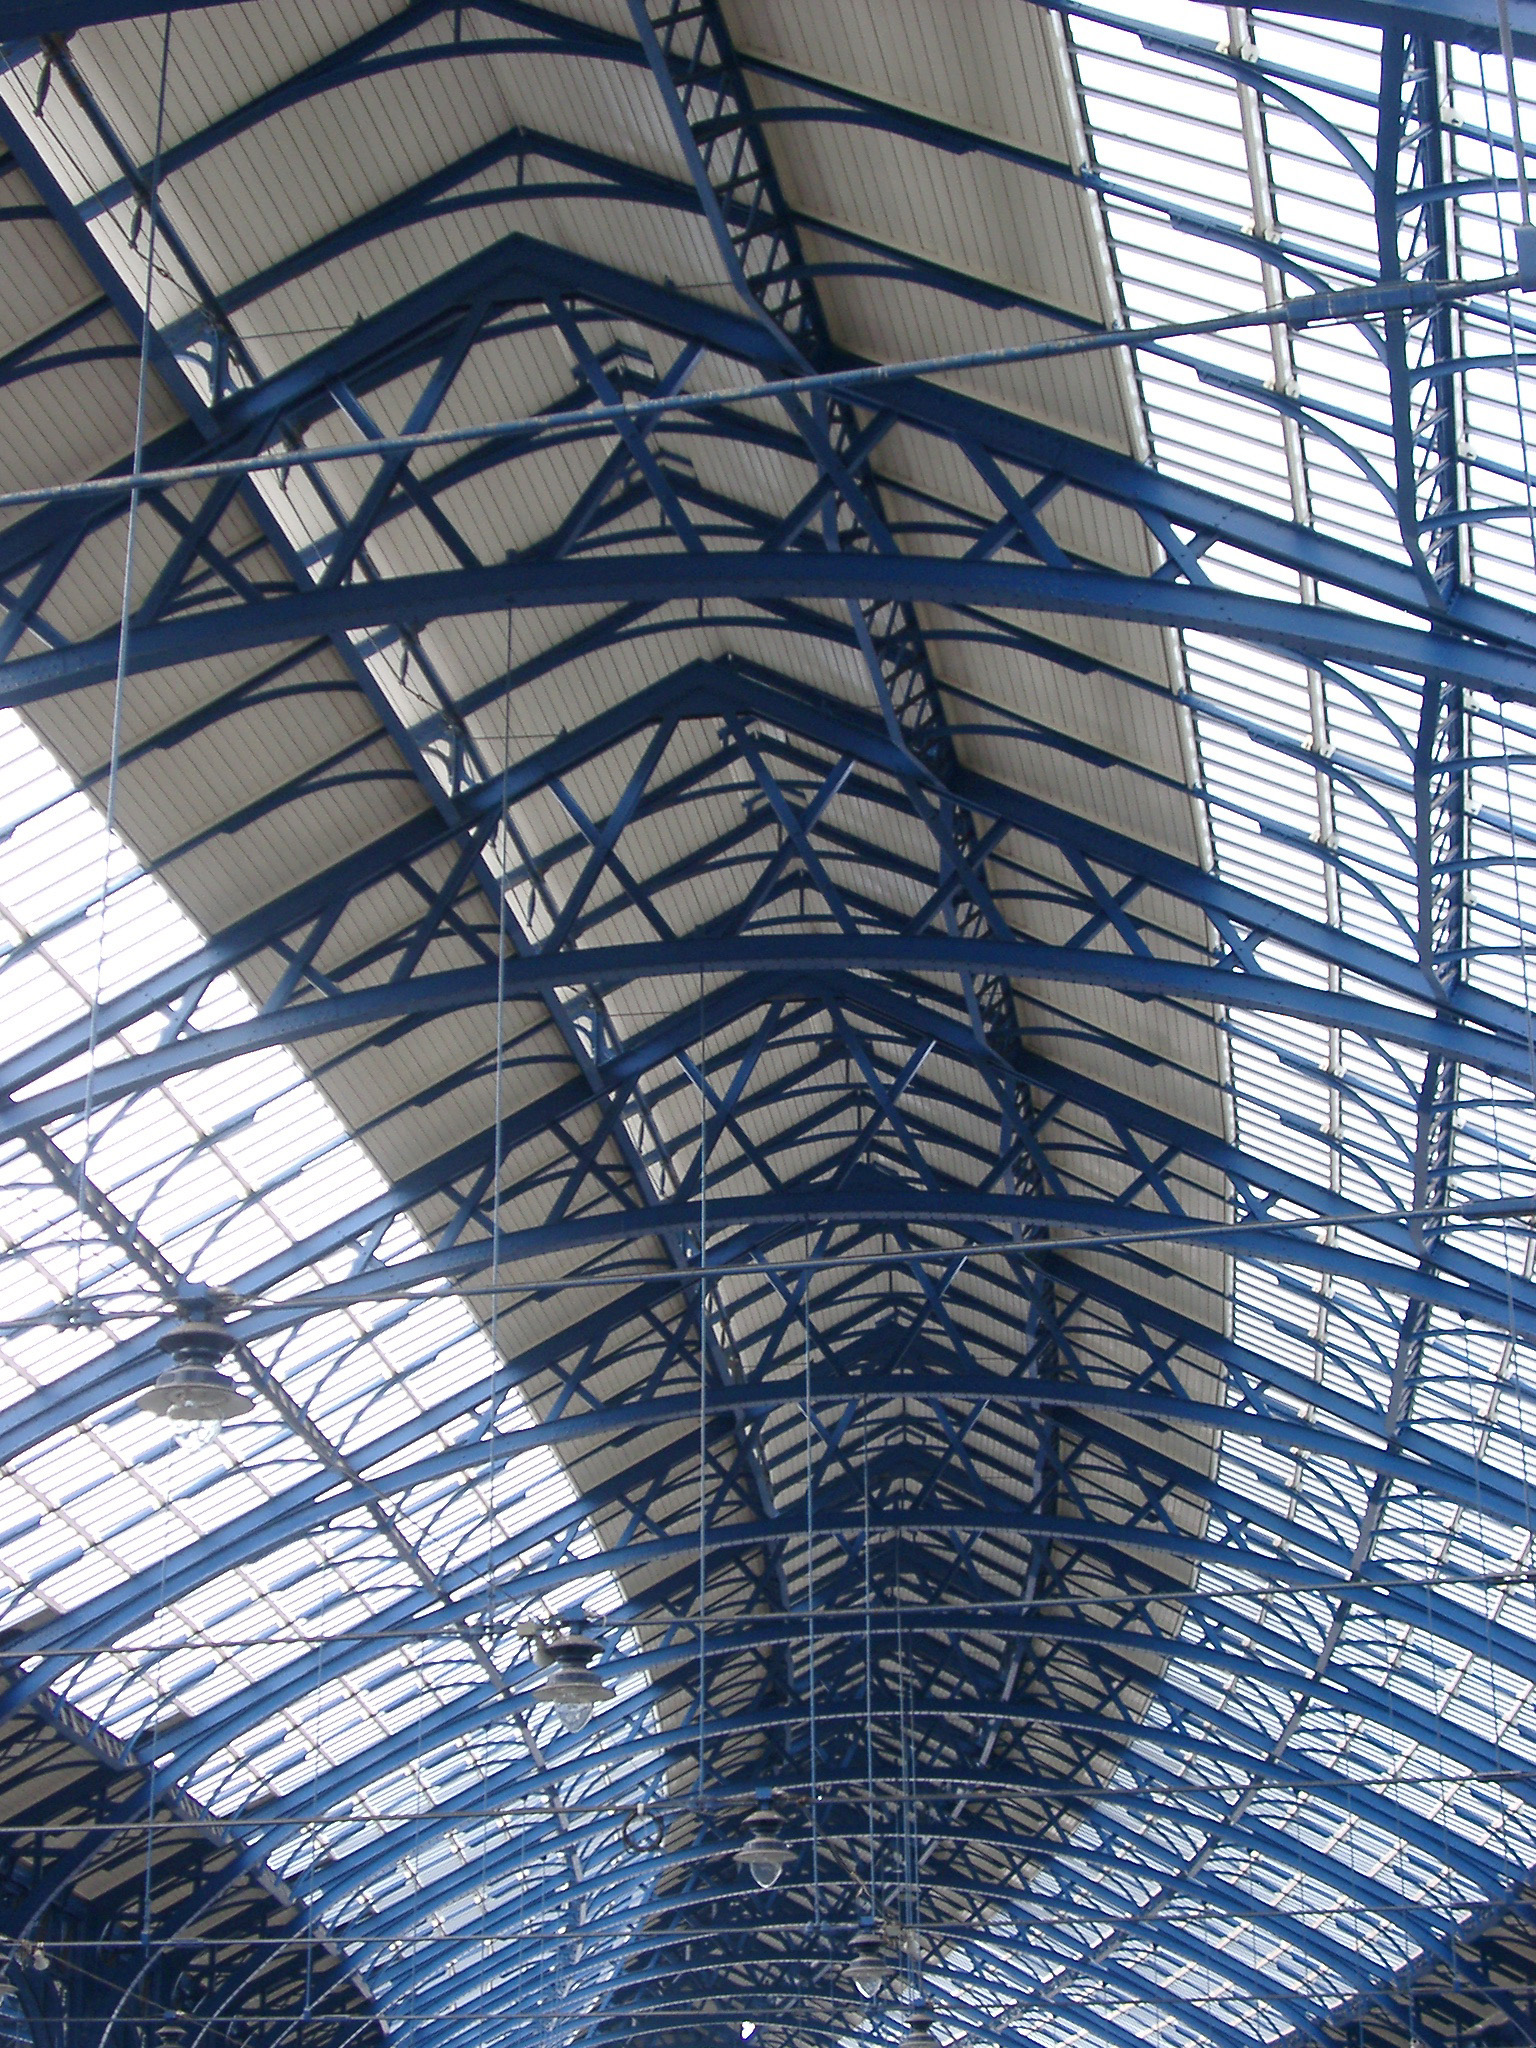 Looking Up at Blue Girder and Glass Ceiling in Brighton Railway Station, Brighton, England